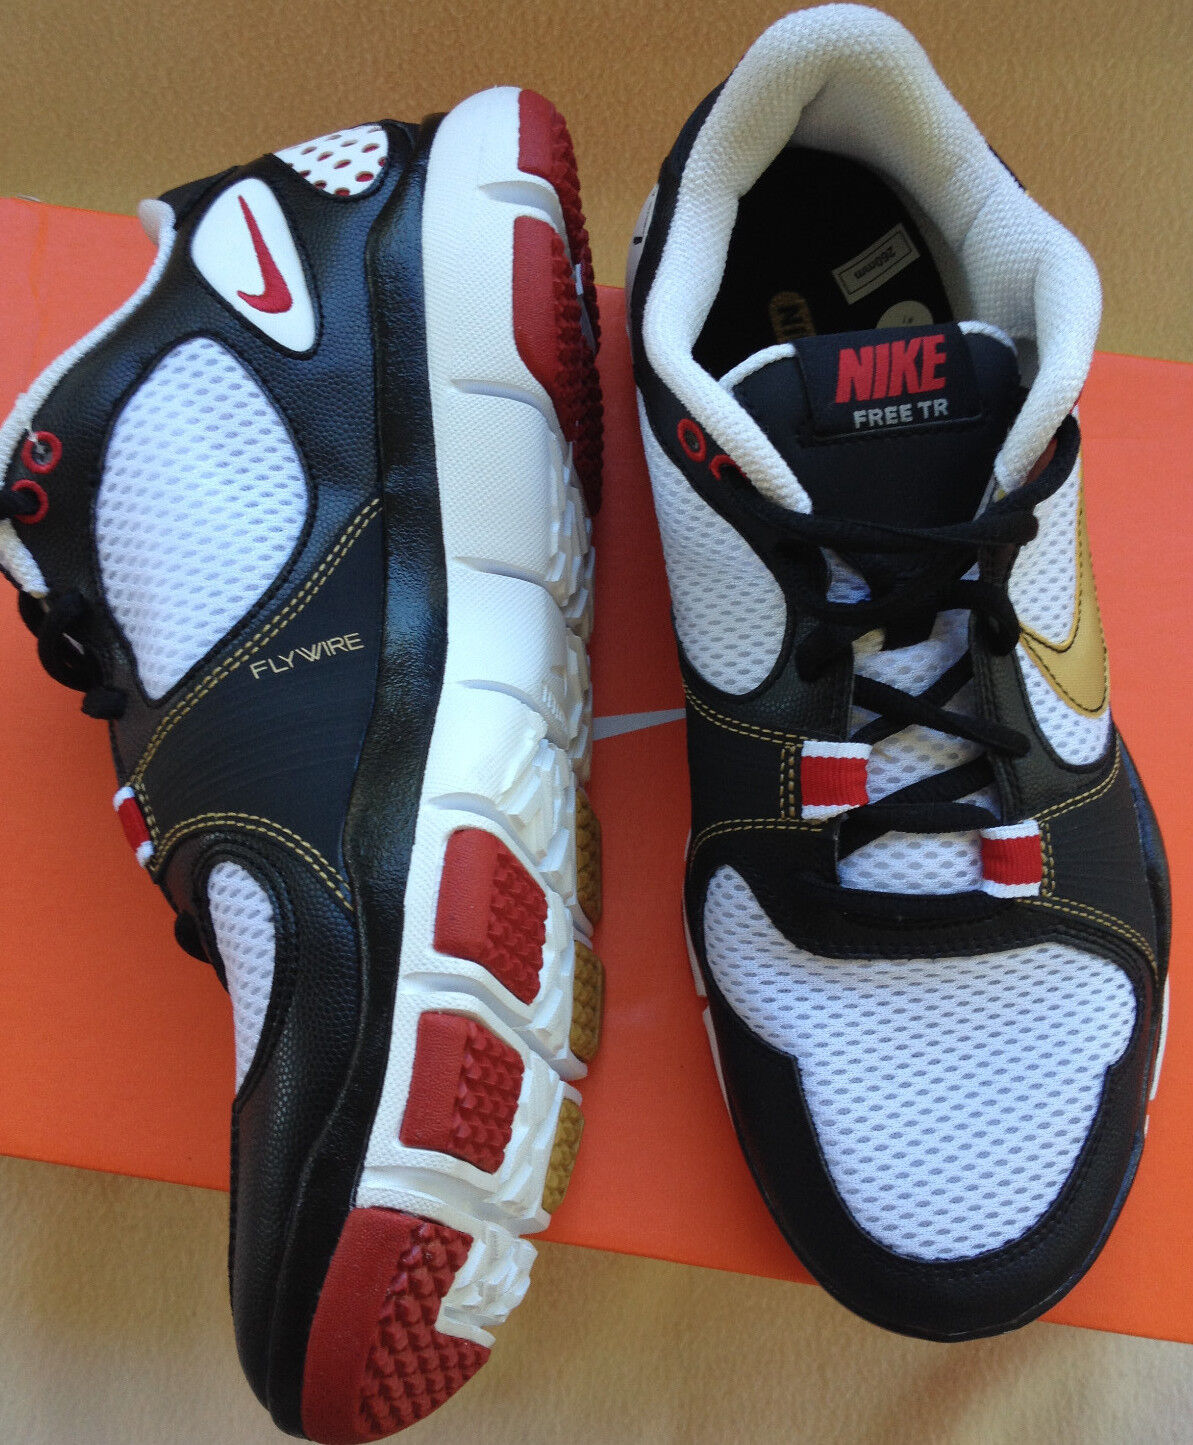 Nike Free TR Flywire 395928-176 Marathon Running Fit Training Shoes Men's 8 new